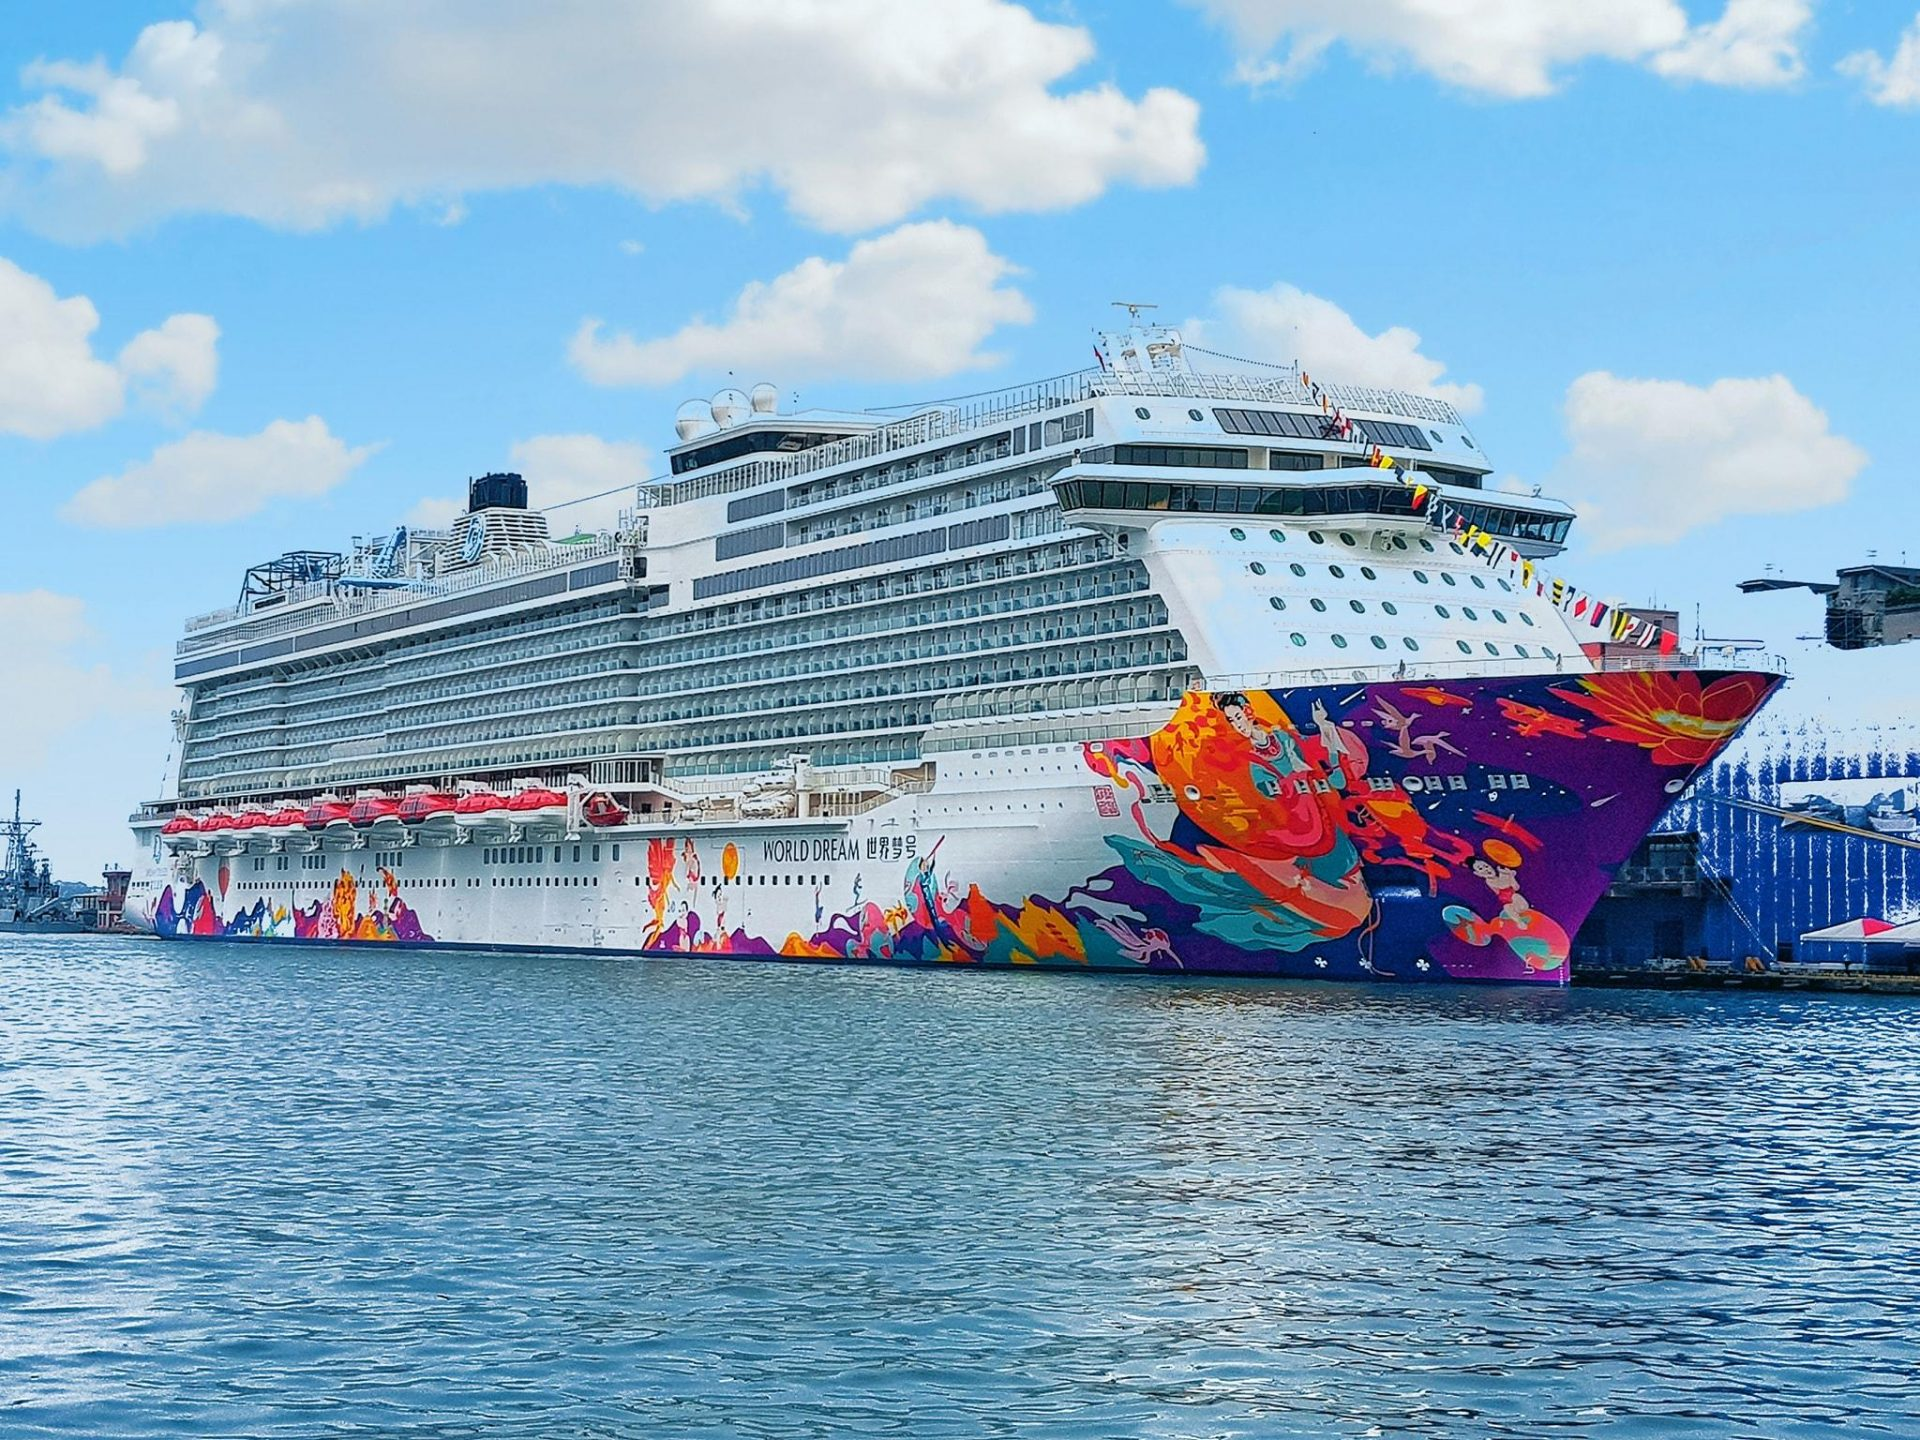 """The """"World Dream"""" (世界夢號) is one of the luxurious cruise ships that have used the Port of Keelung as their homeport. (Image: Courtesy of Xing-Mei/Keelung City)"""